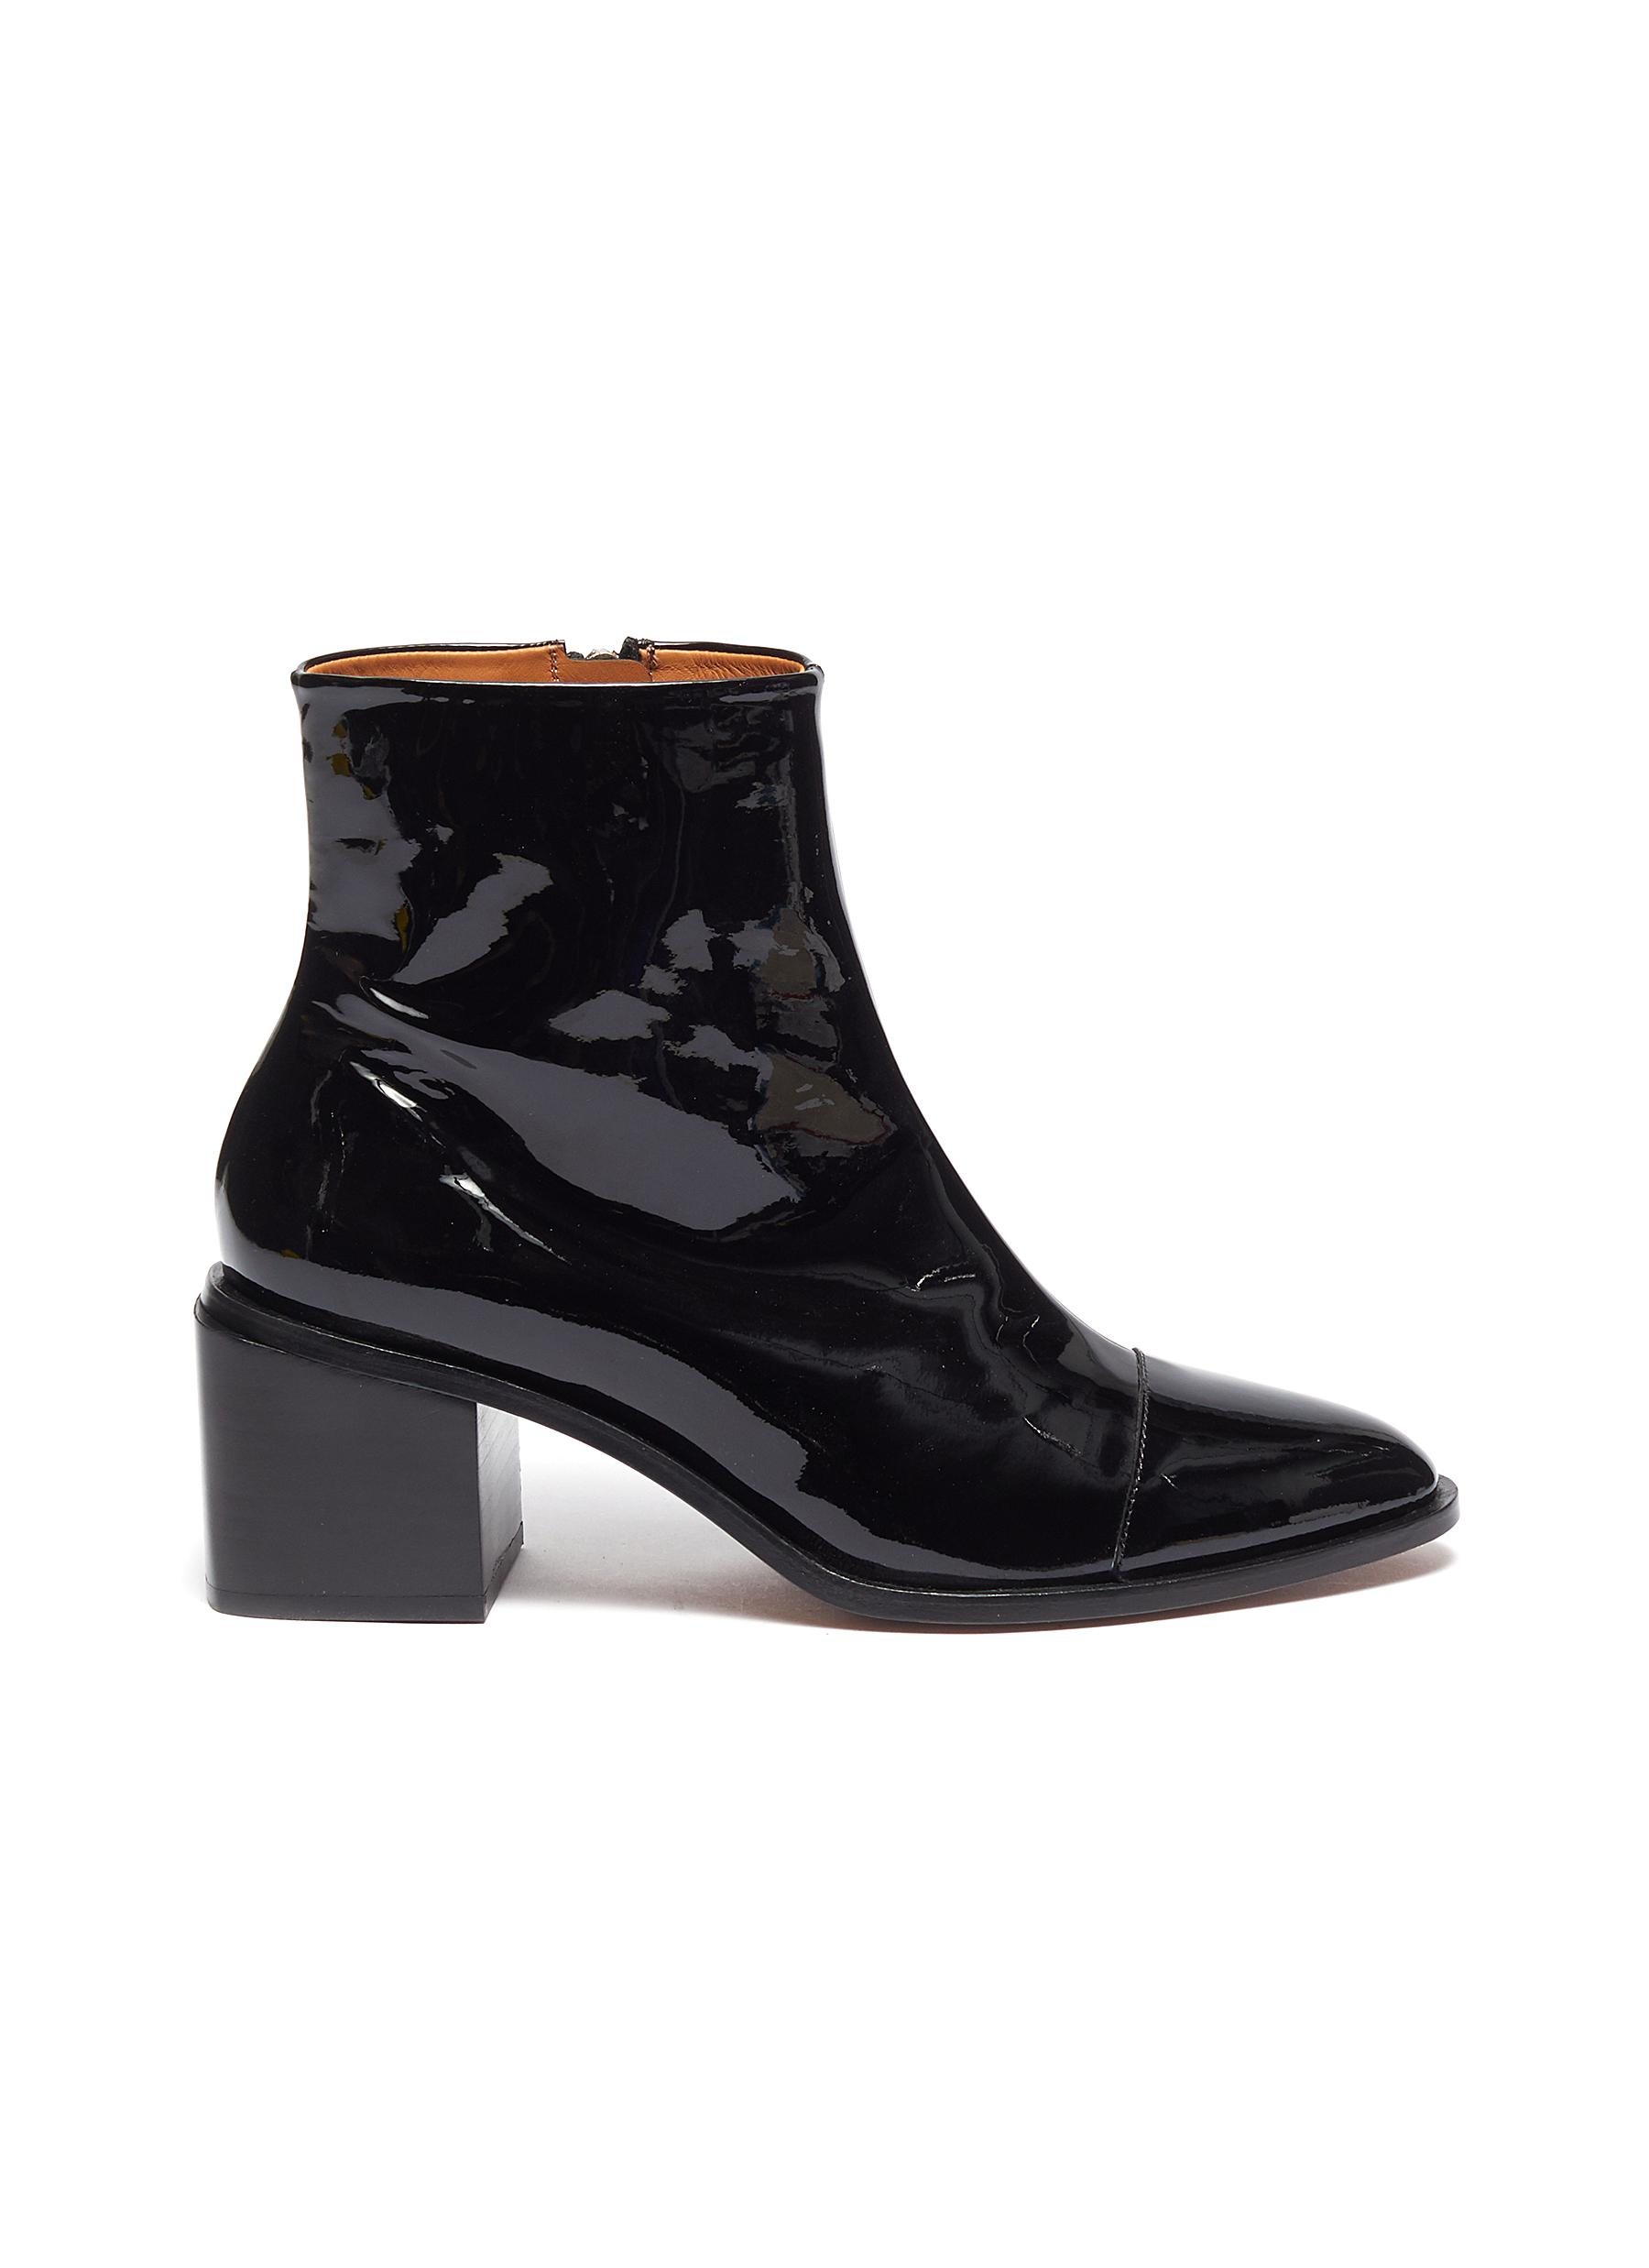 Xoli patent leather ankle boots by Clergerie